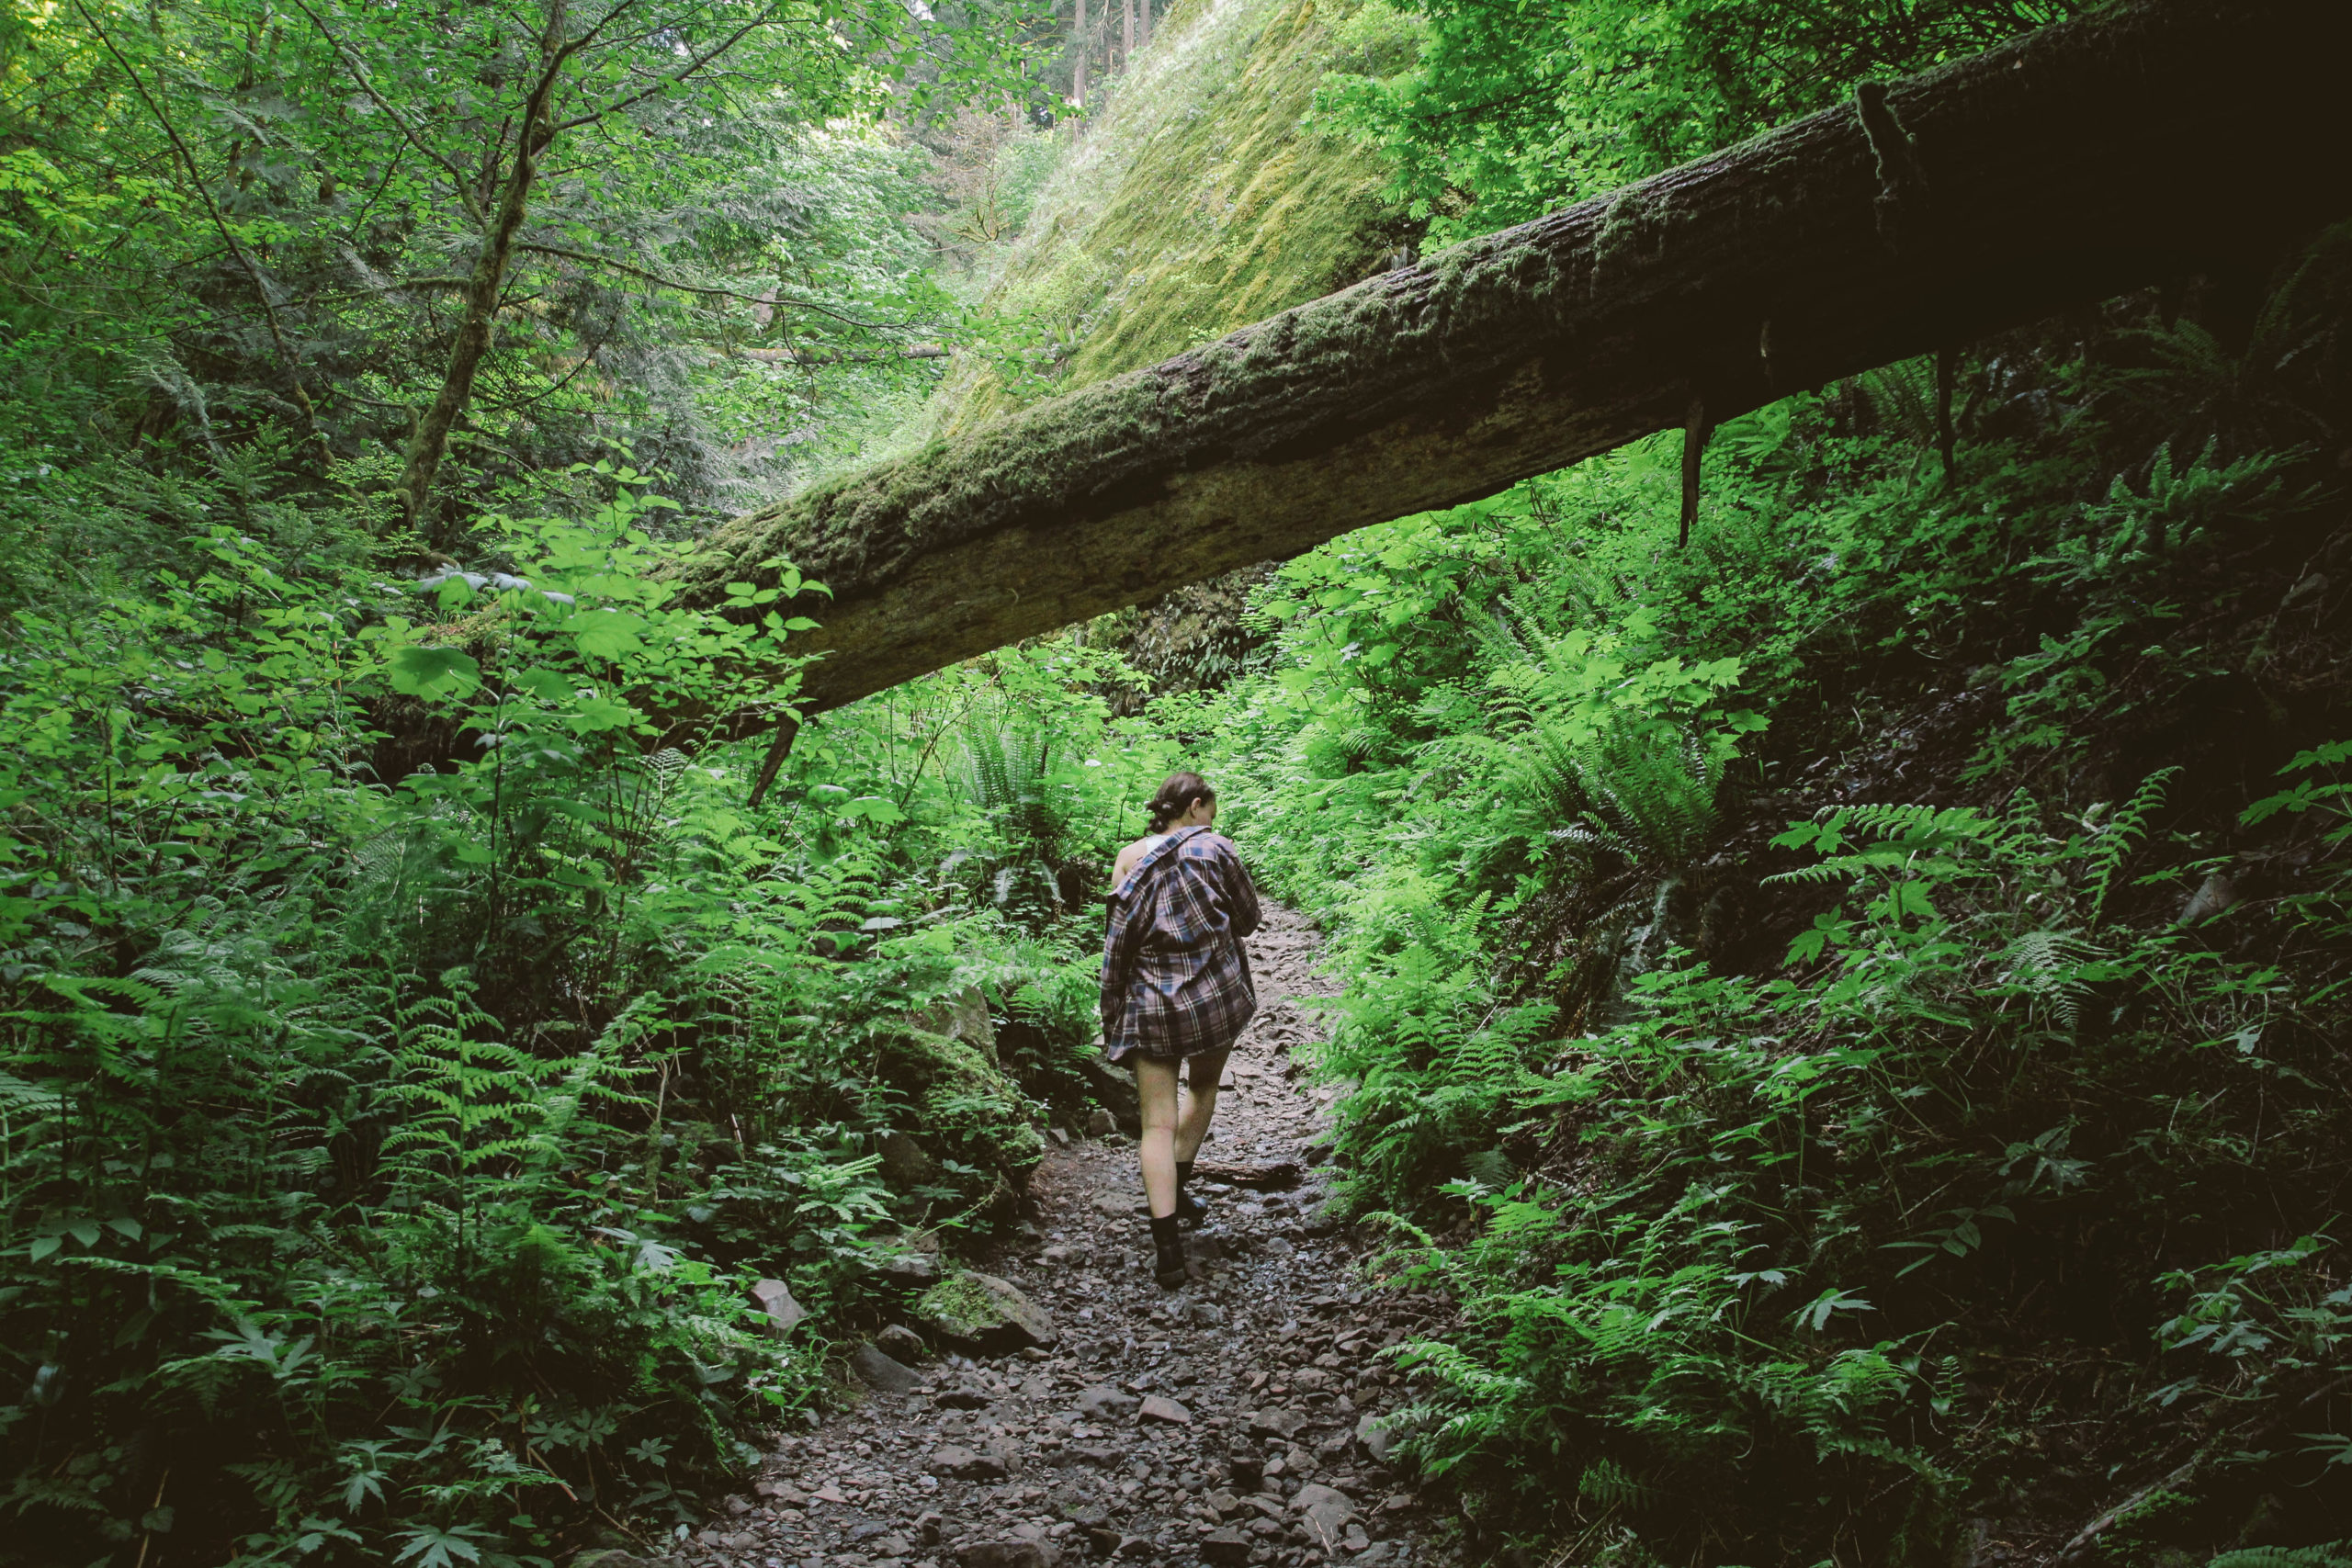 A woman hikes under a log in a lush Oregon landscape.